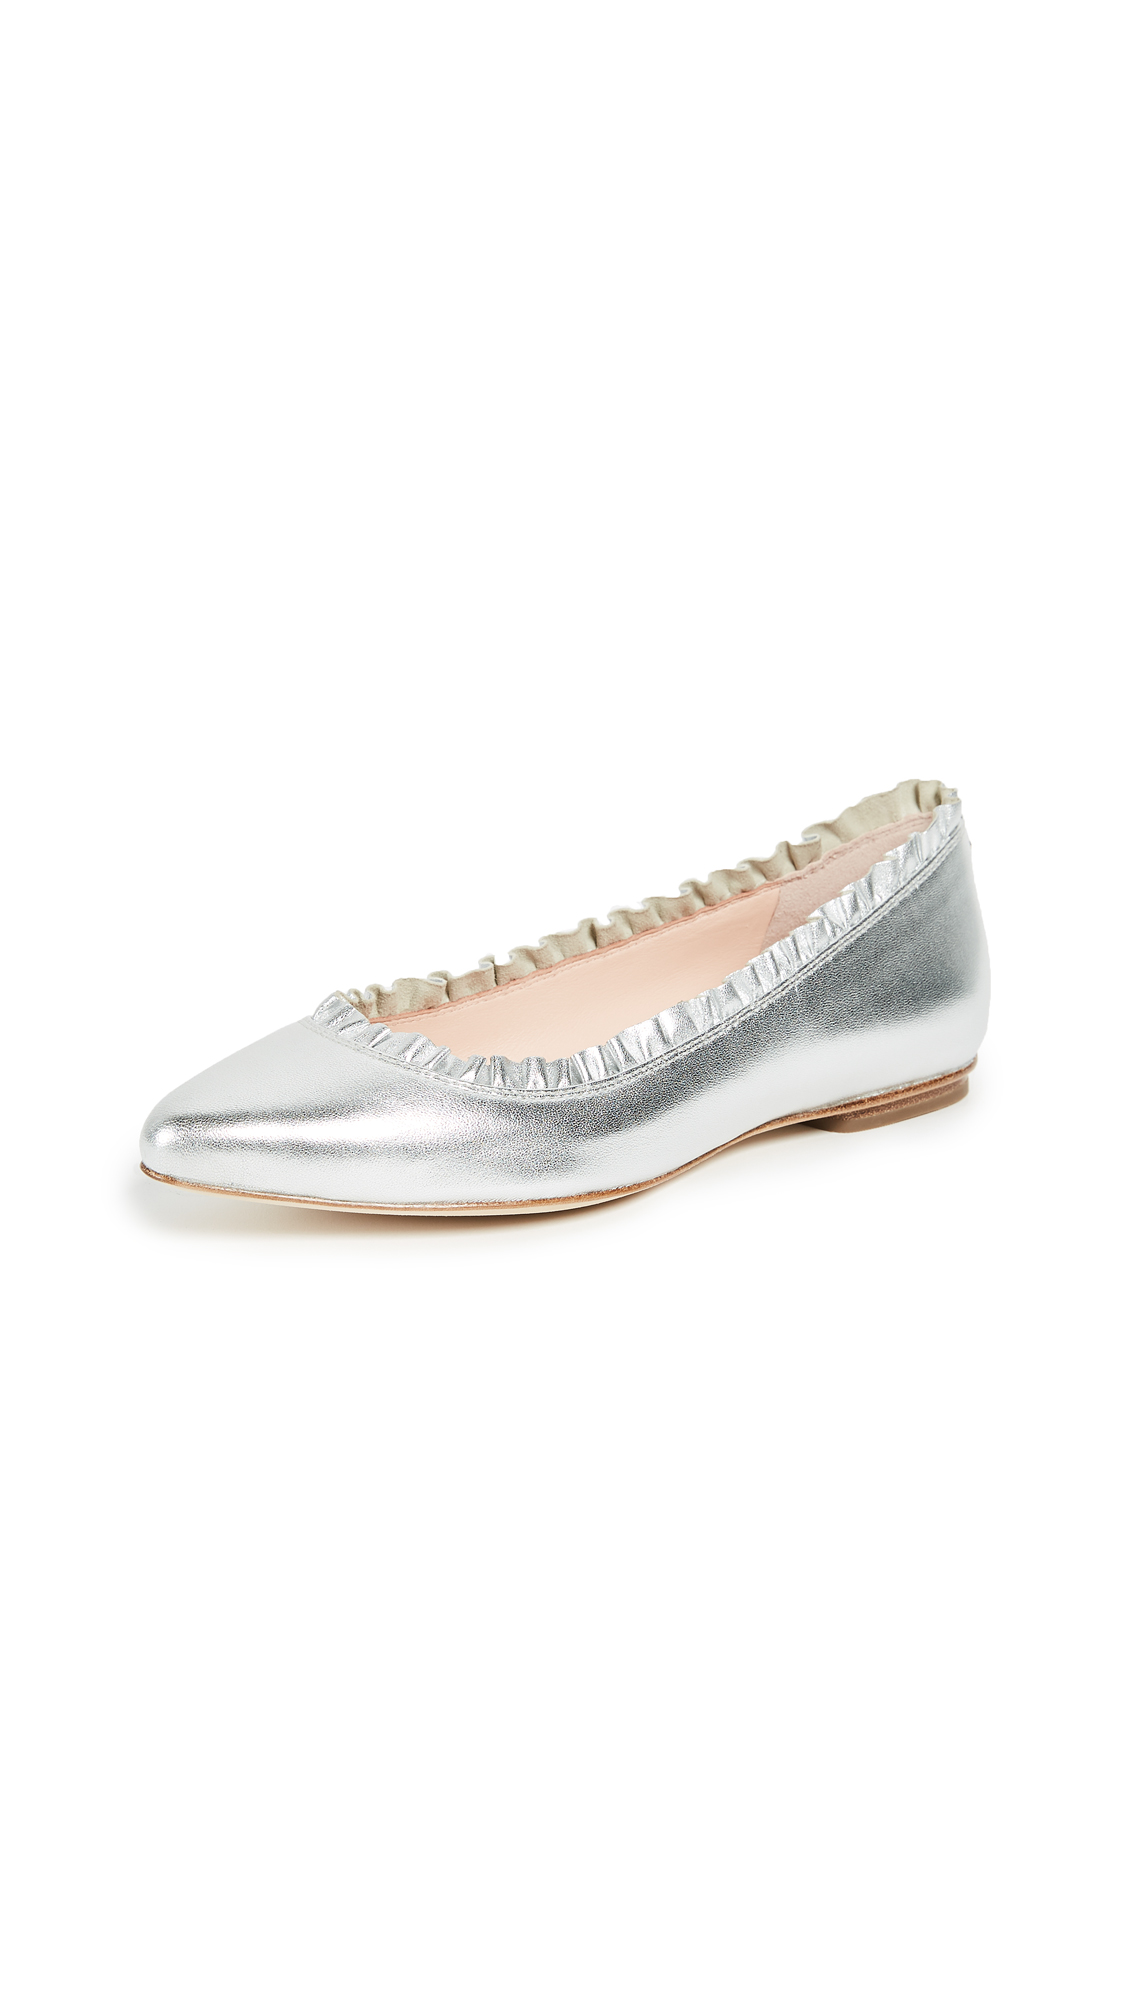 Kate Spade New York Nicole Skimmers - Silver